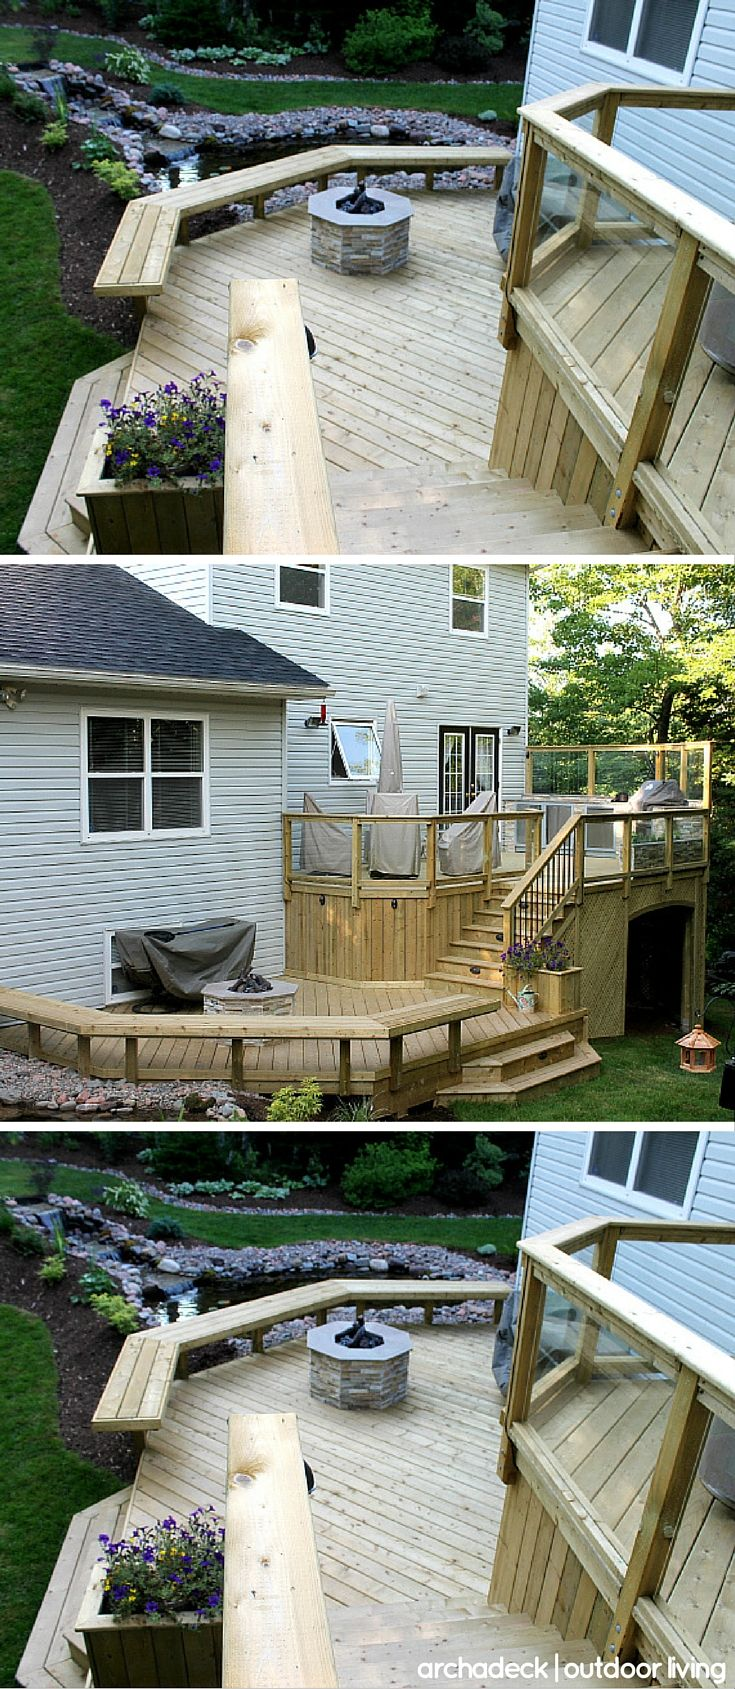 This Multilevel Wood Deck Has It All Fire Pit Outdoor Kitchen Glass Railing Built In Bench And Planter Lightin Outdoor Fire Pit Outdoor Fire Outdoor Wood